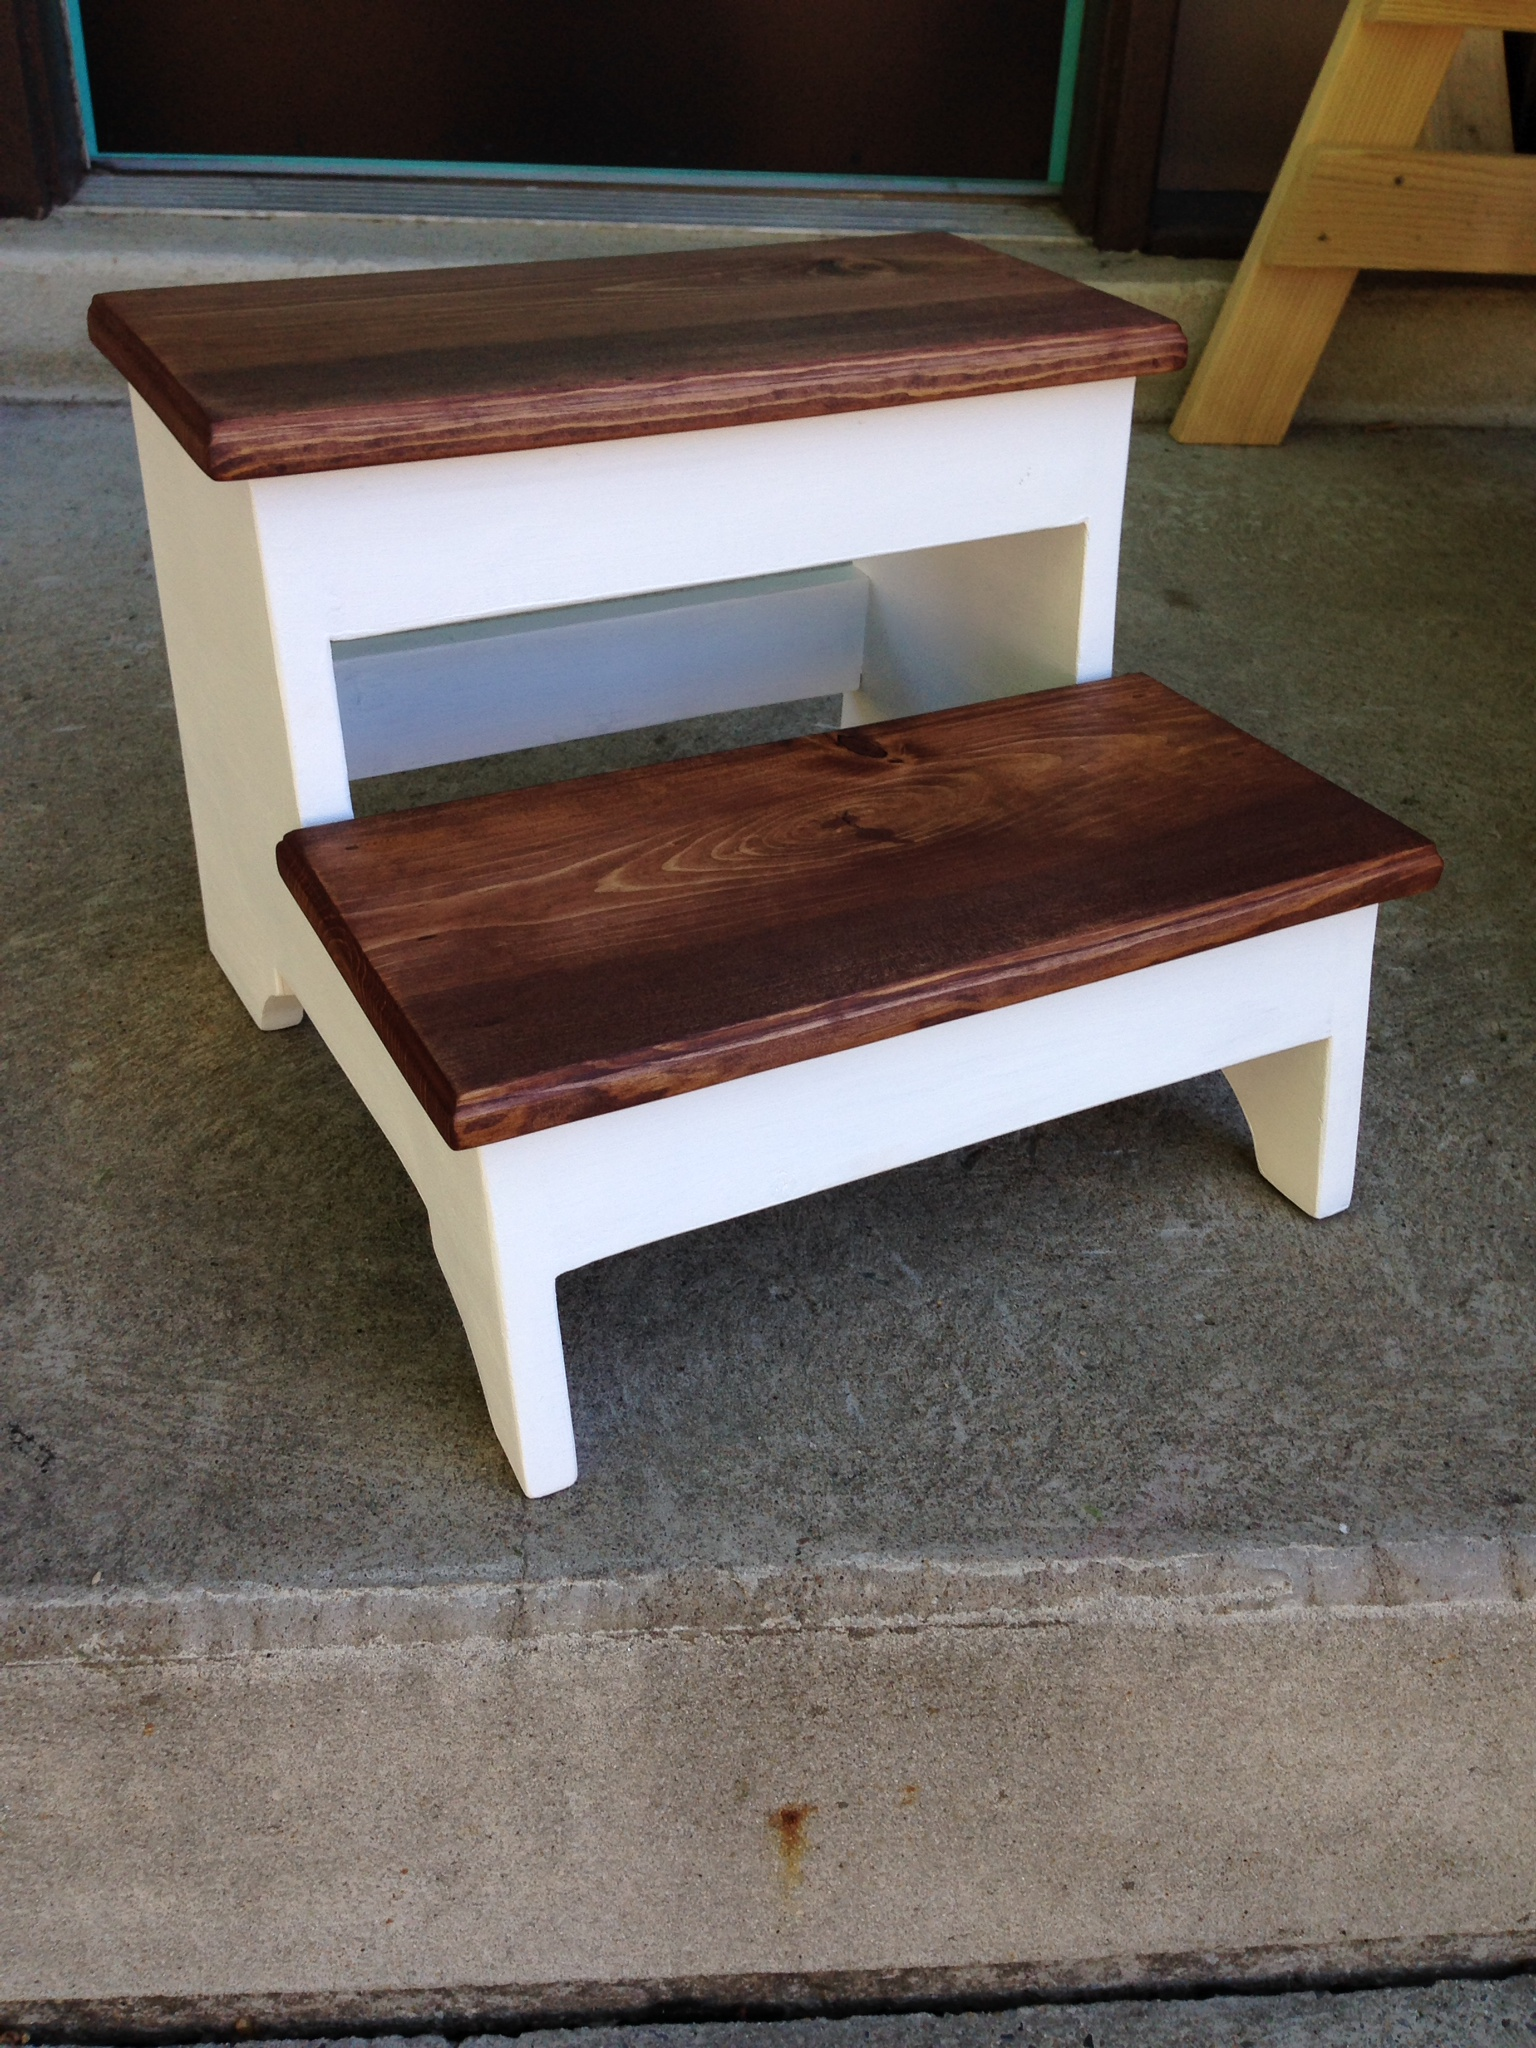 Wooden Step Stool Bedside: Step Stool - DIY Projects